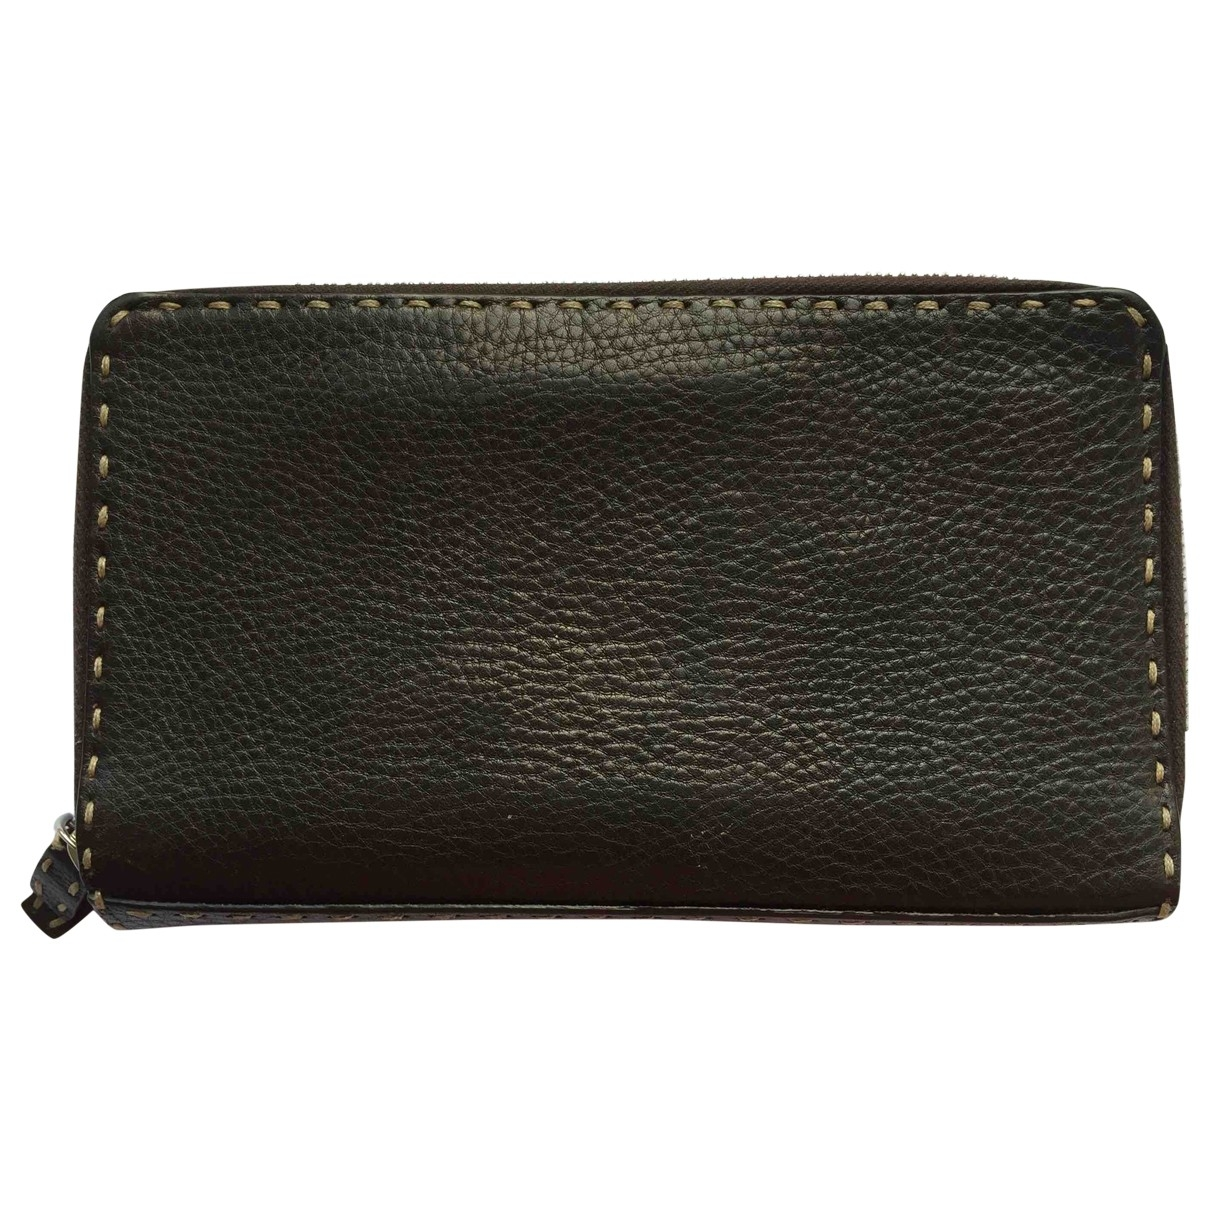 Fendi \N Brown Leather wallet for Women \N